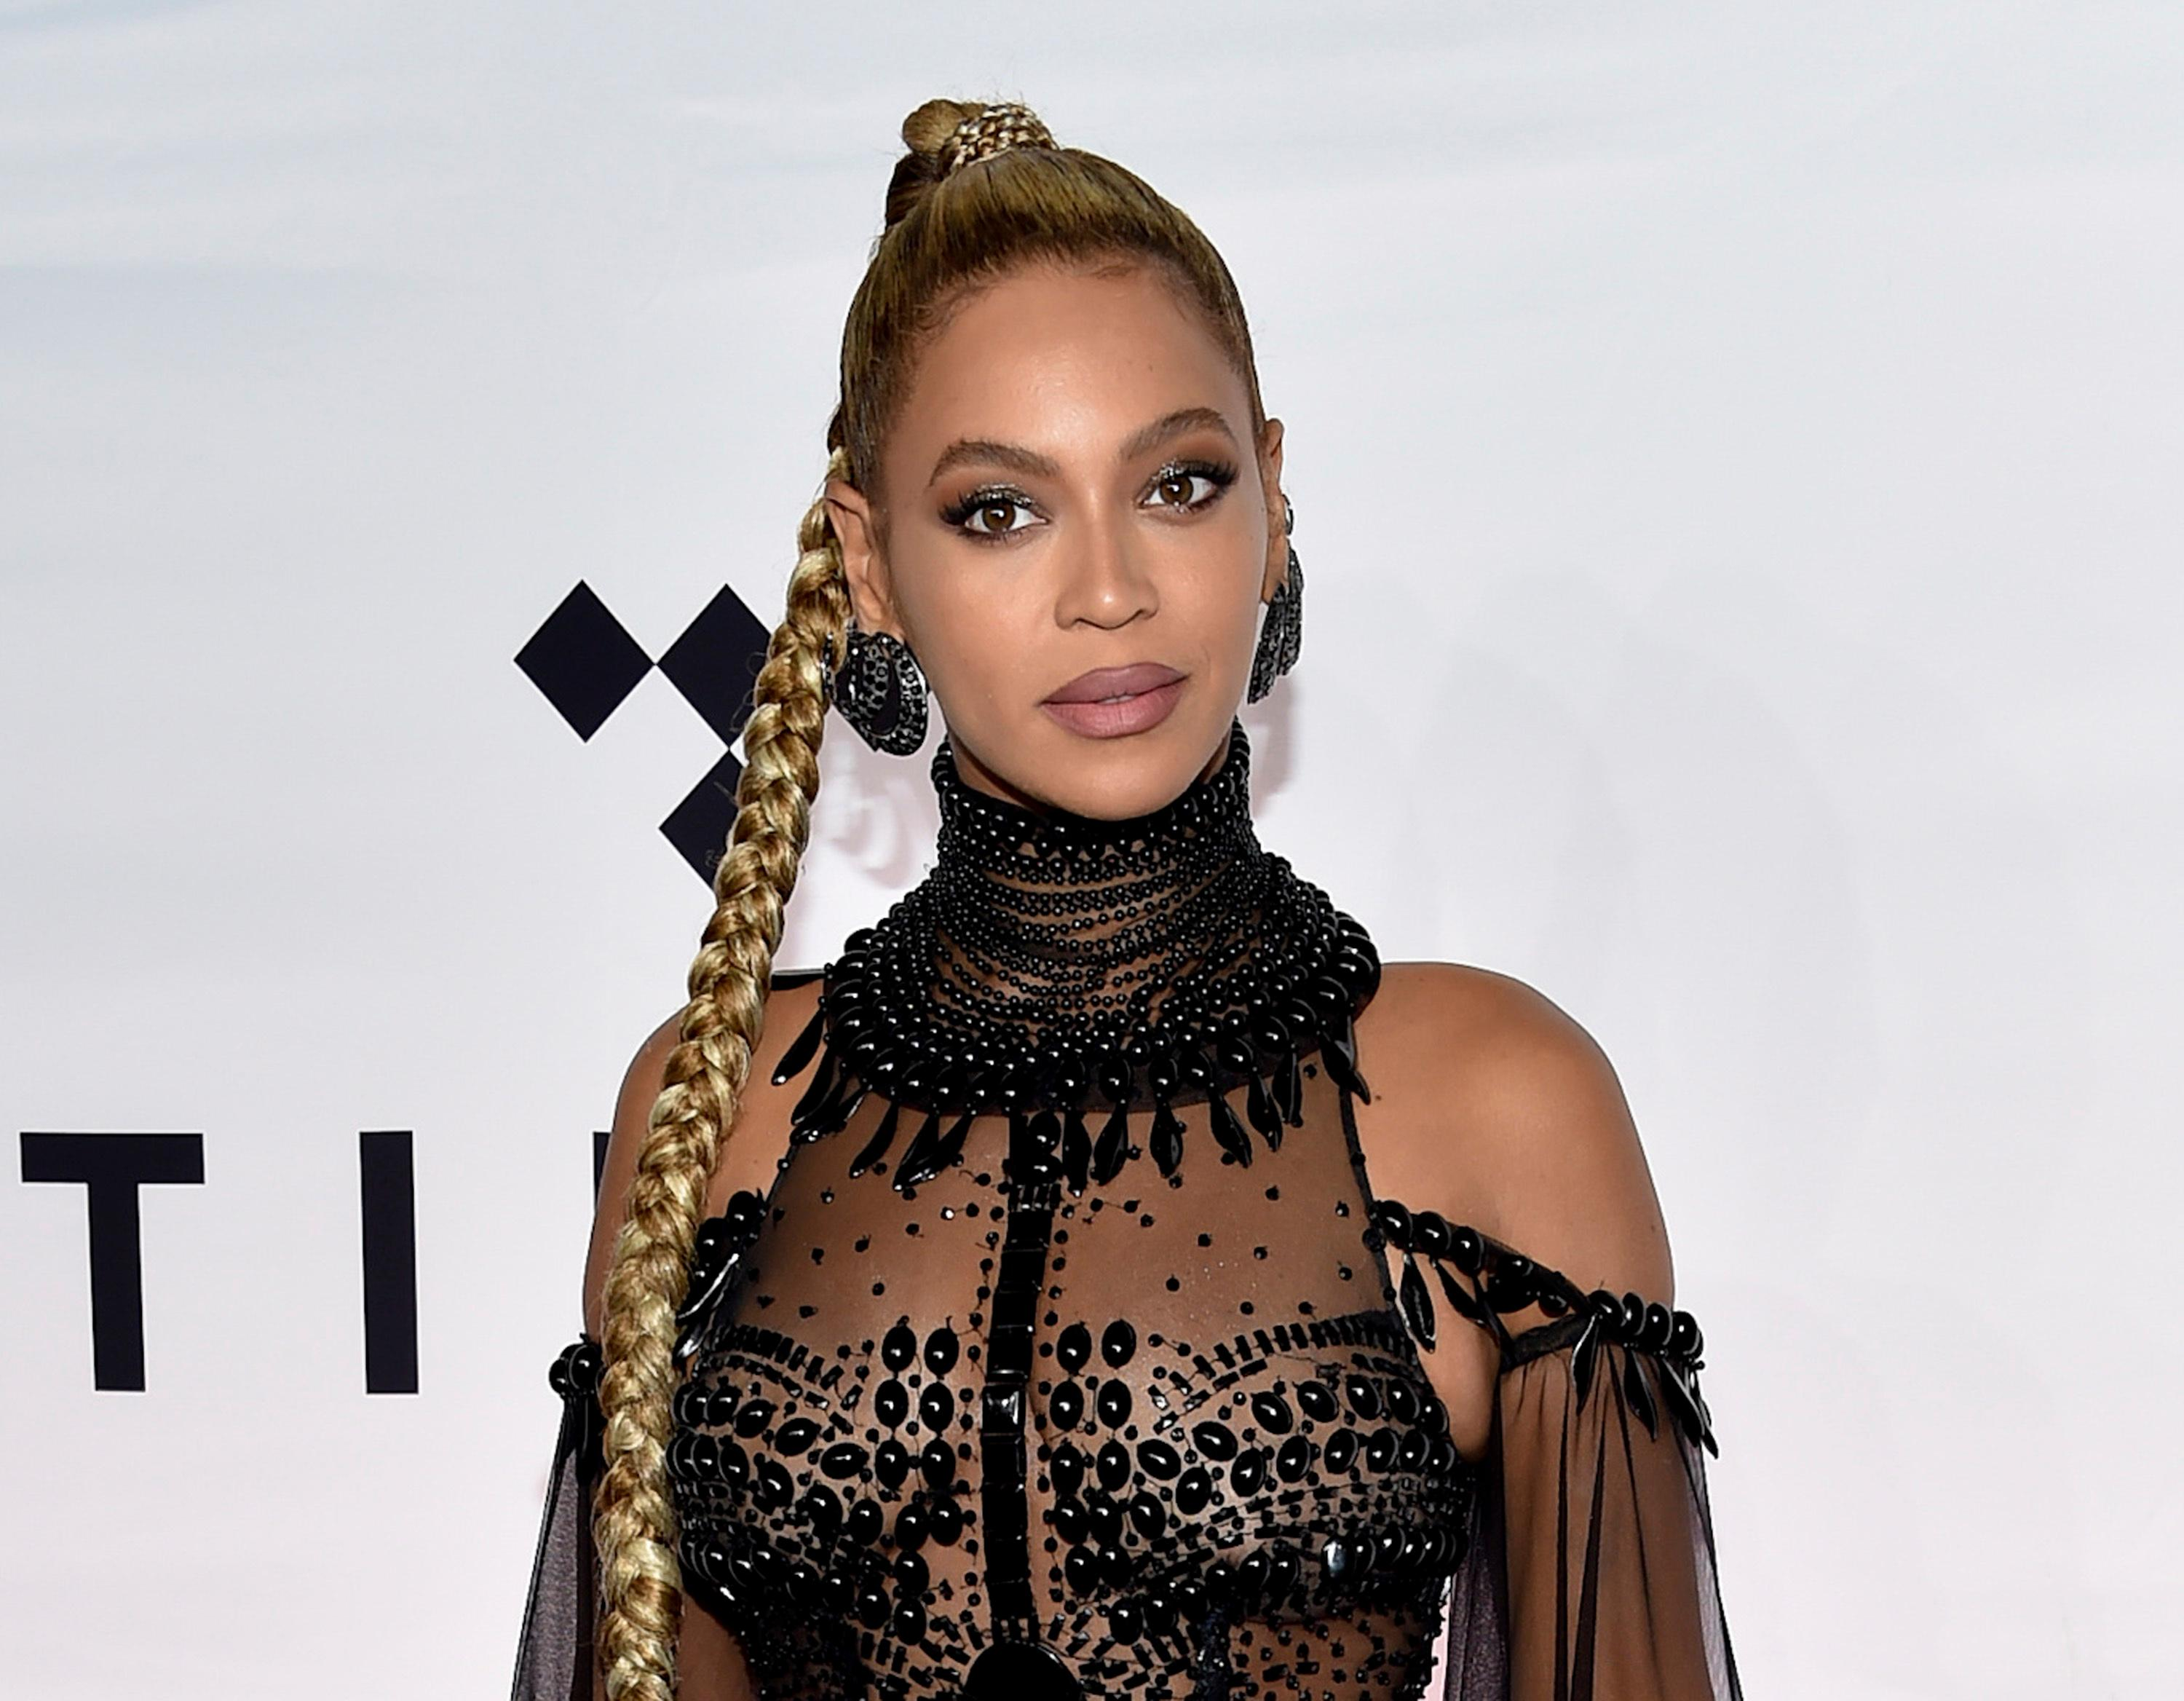 FILE - In this Oct. 15, 2016 file photo, singer Beyonce Knowles attends the Tidal X: 1015 benefit concert in New York. Beyonce is among 100 black luminaries being recognized by Ebony magazine. The magazine revealed its annual Power 100 list Friday, Nov. 4, which recognizes outstanding achievements by black entertainers, corporate heads and civic leaders. (Photo by Evan Agostini/Invision/AP, File)